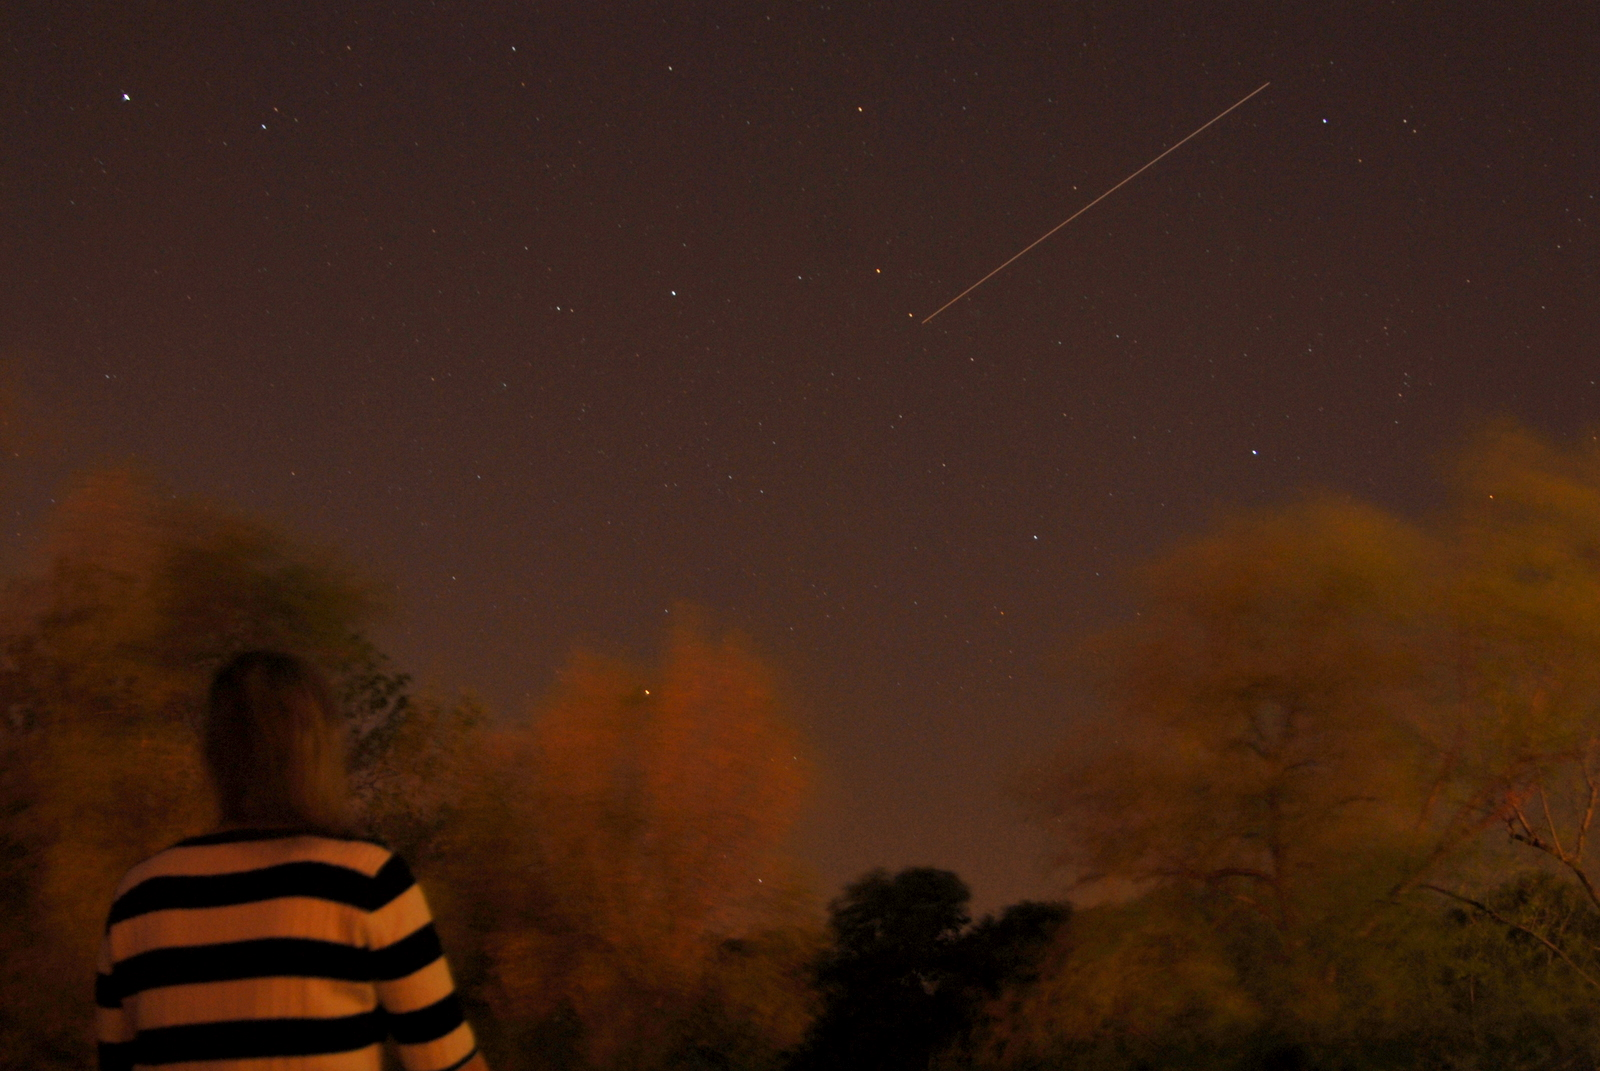 Coeta and the ISS